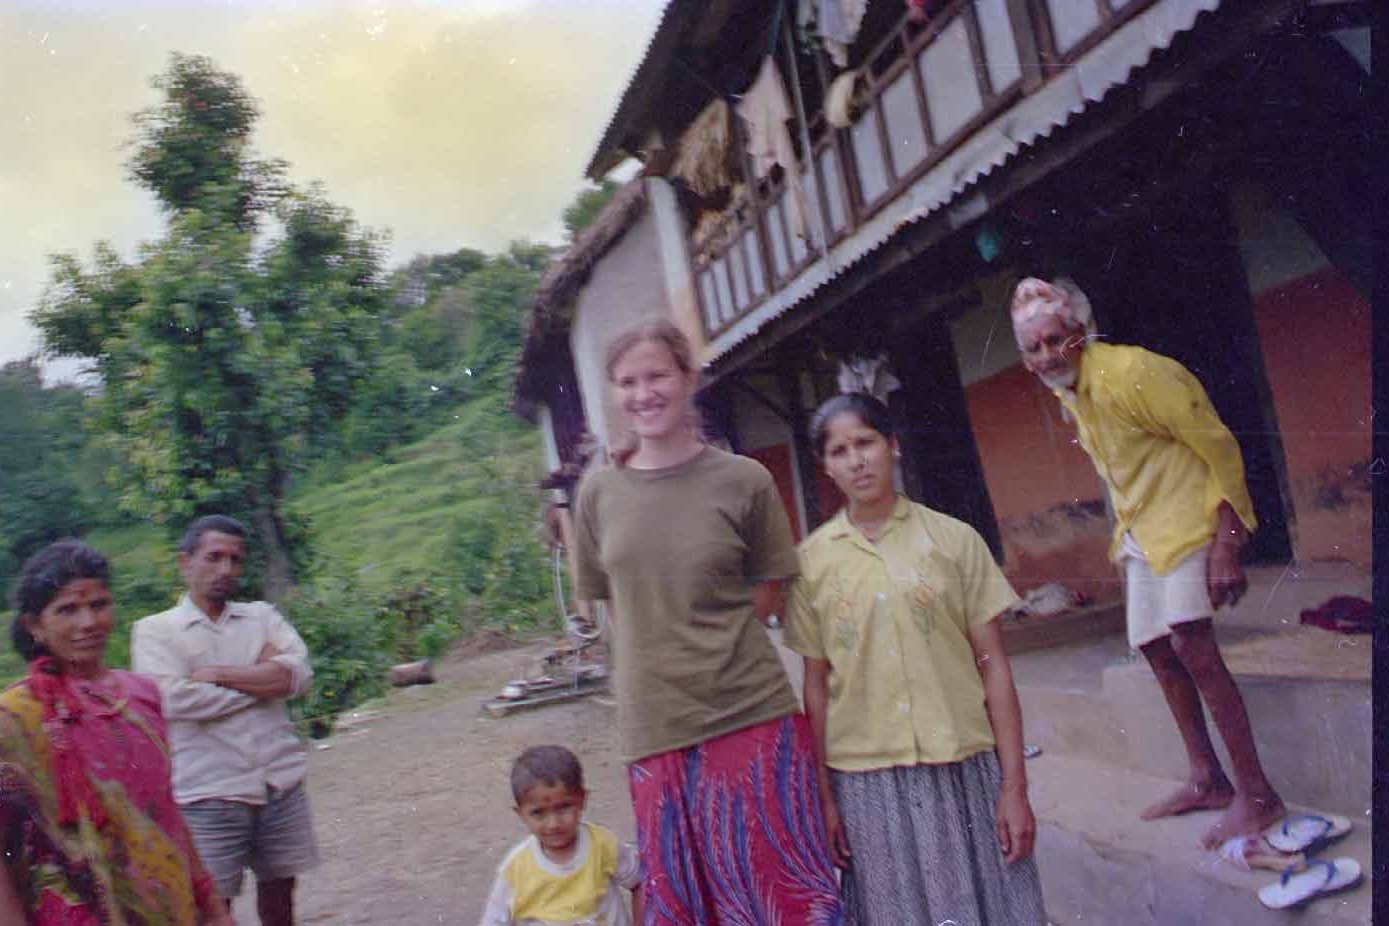 Natasha and Bibek 1995 photo by Bishnu Poudel.jpg